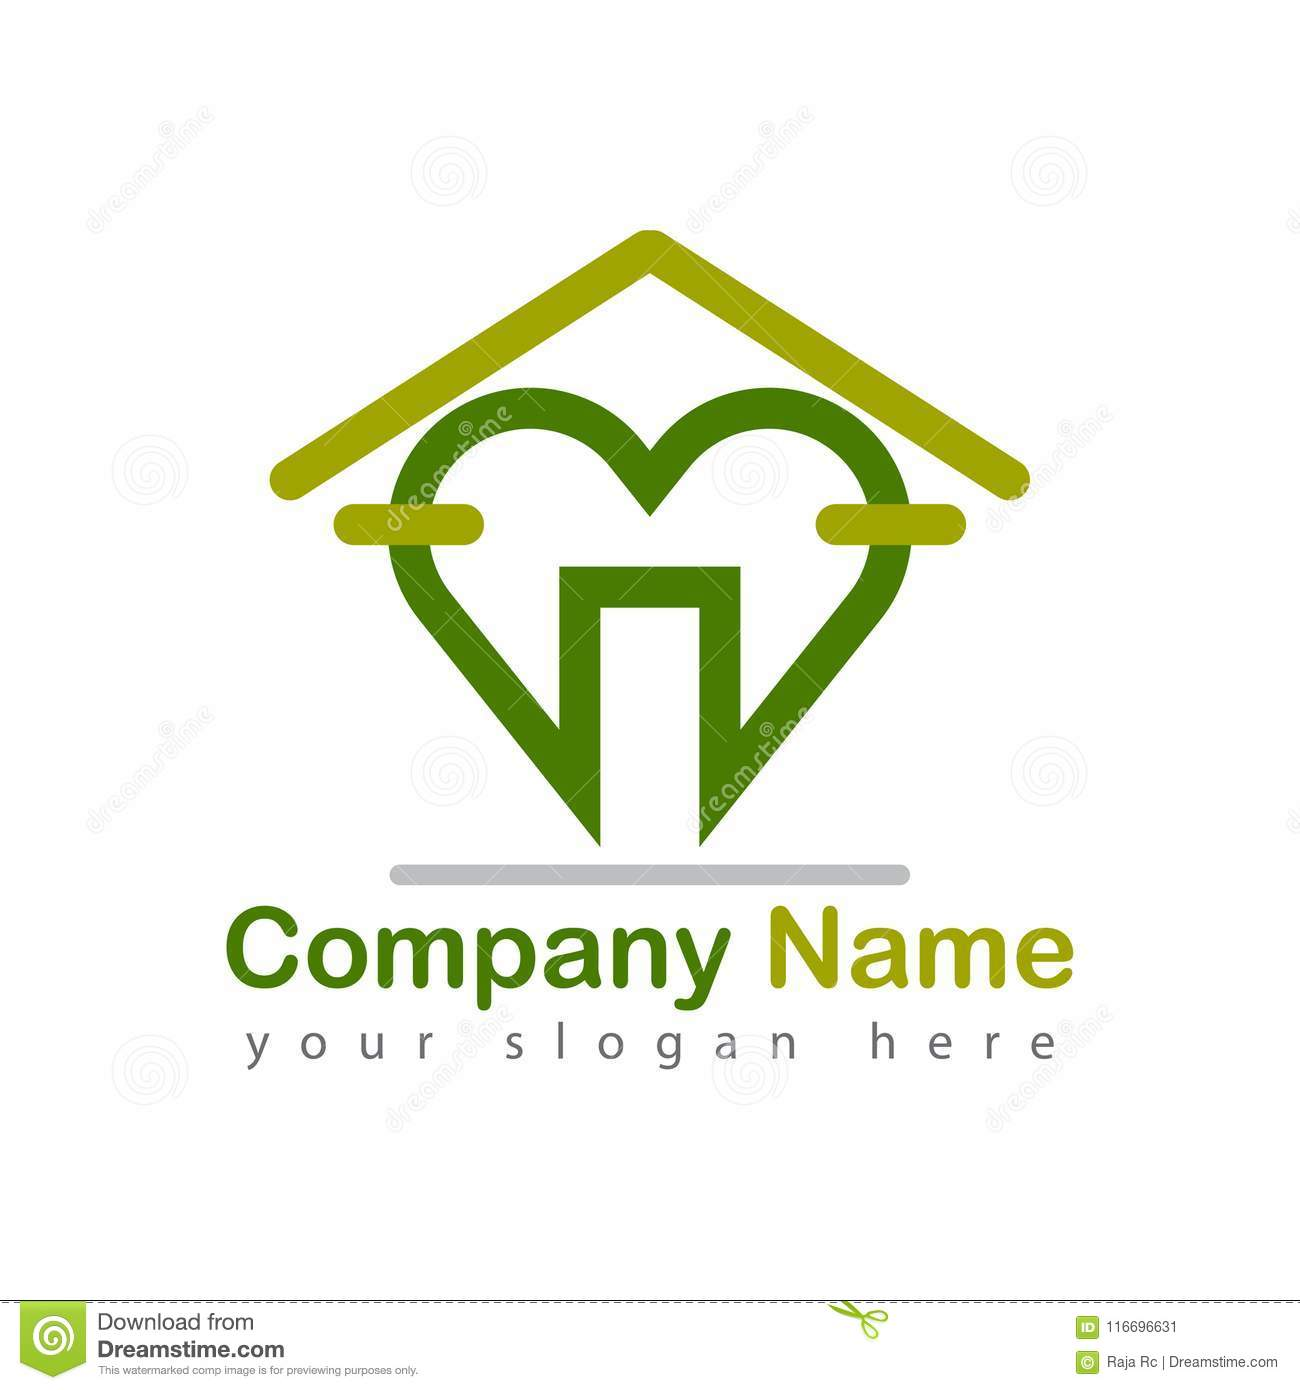 Health Care Heart Home Logo Stock Vector Illustration Of Construct Business 116696631